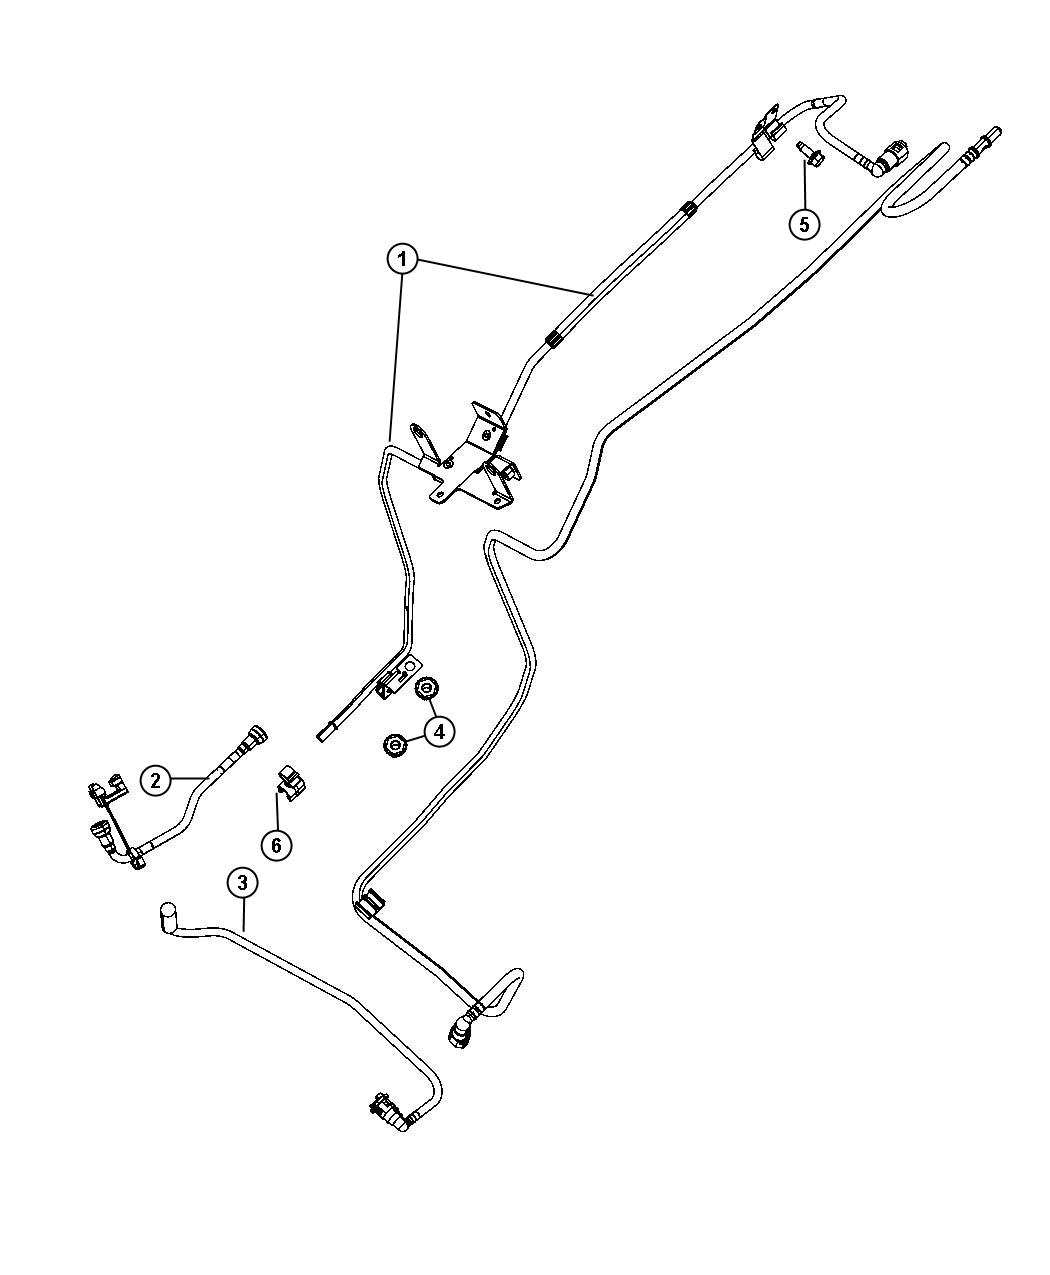 Fuel Lines And Related